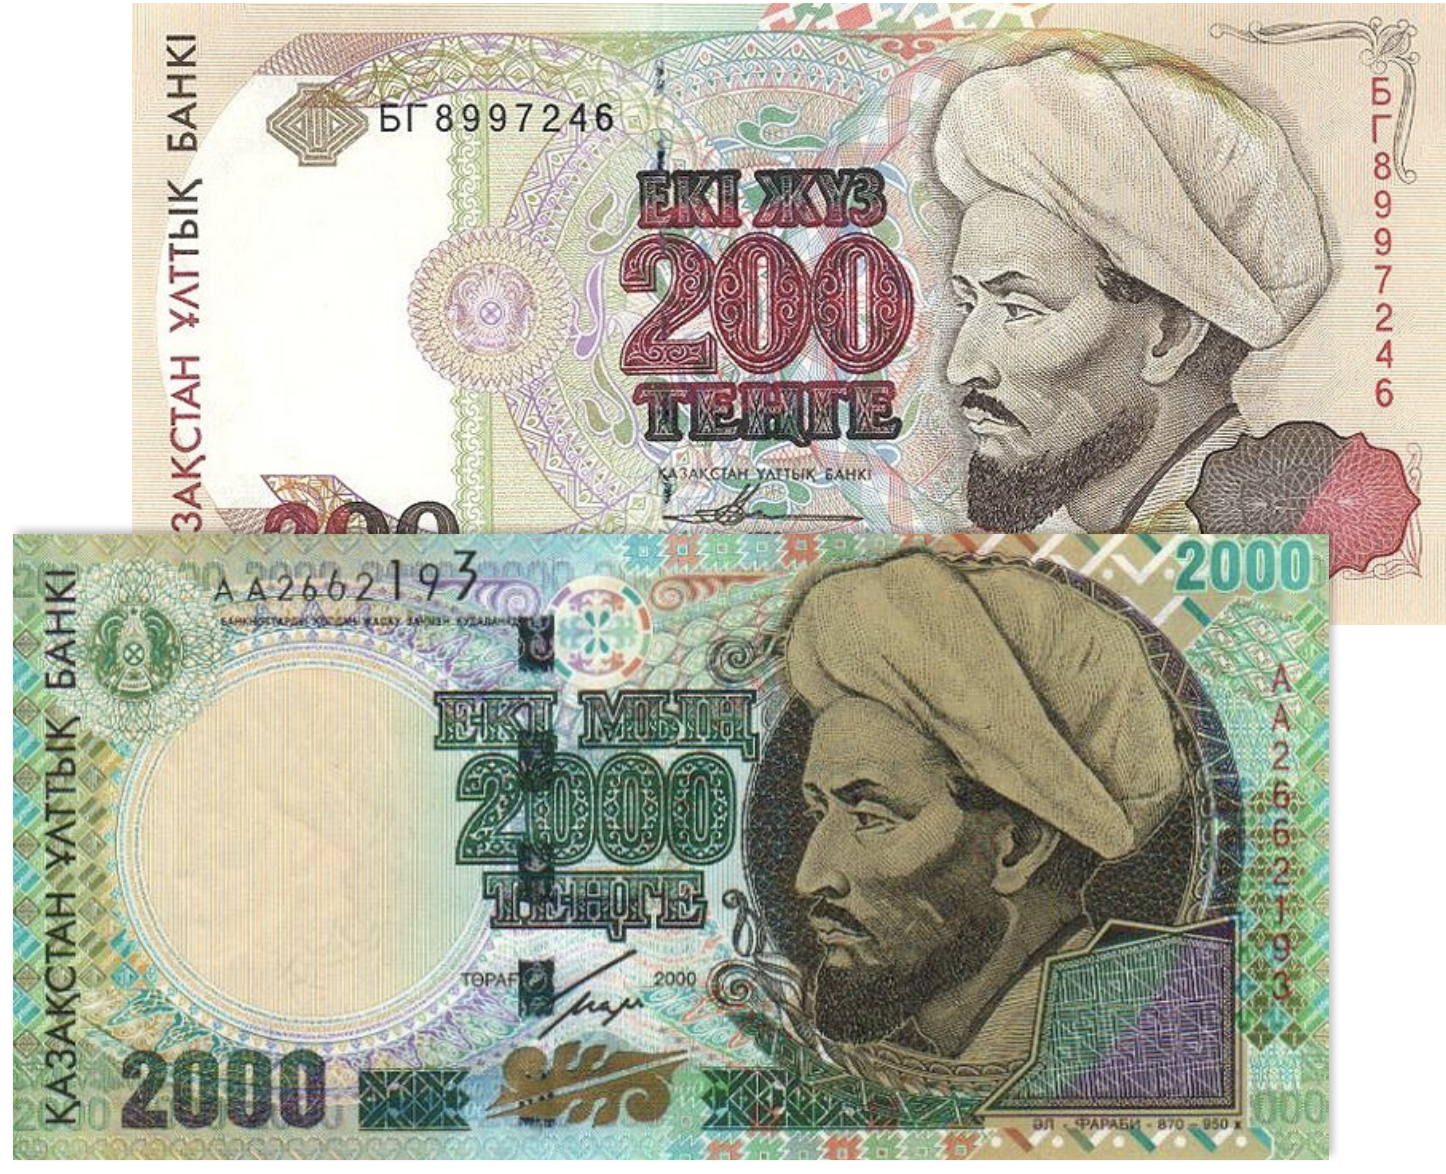 Khazakstani tenge bills (200, 2000). Images courtesy of author.